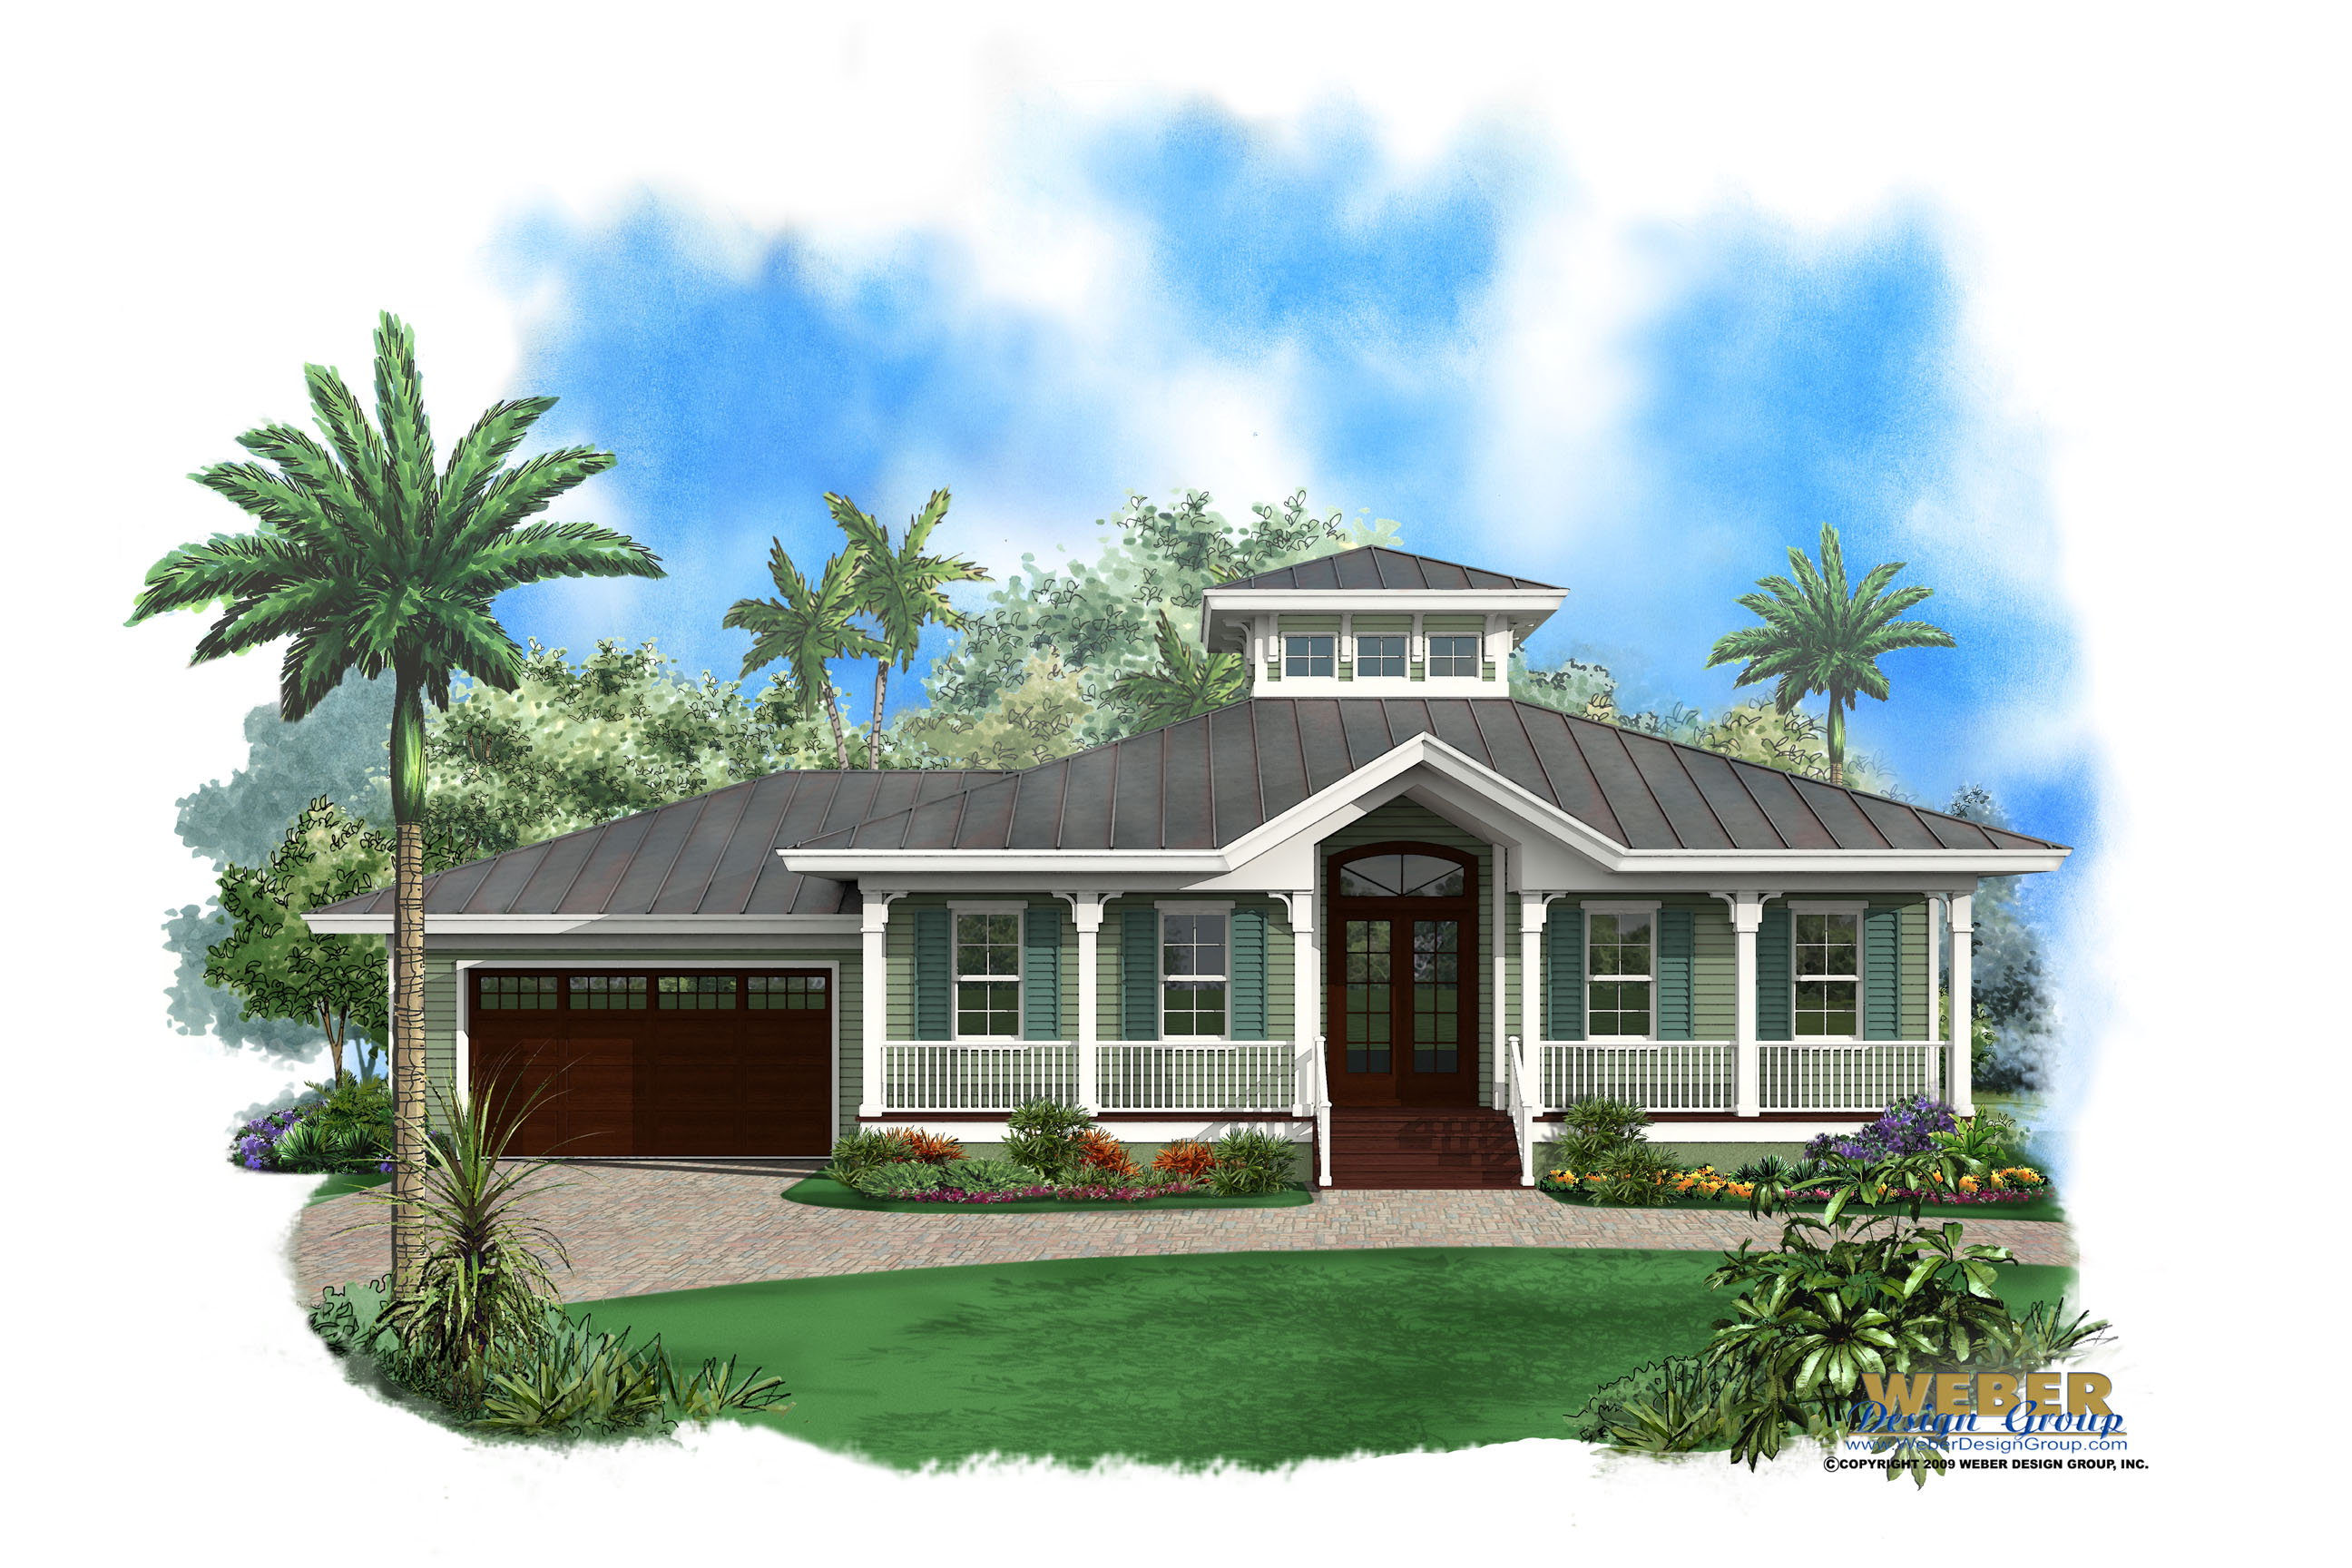 Olde florida home plans stock custom old florida cracker Florida style home plans